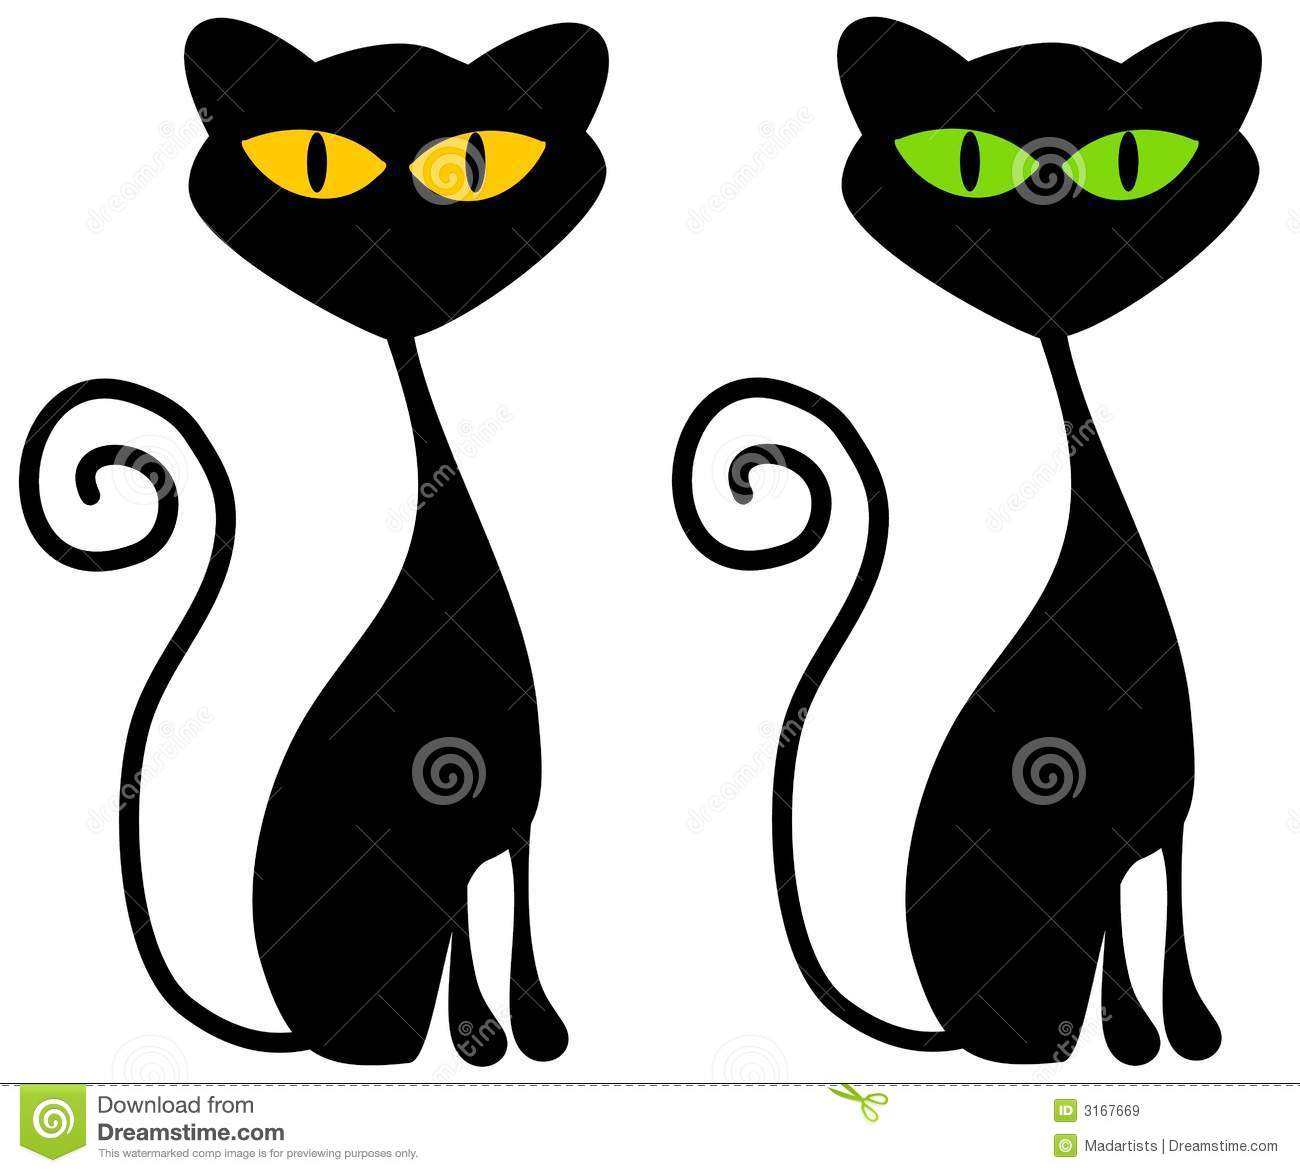 hight resolution of a clip art illustration of 2 black cats with big green and yellow eyes